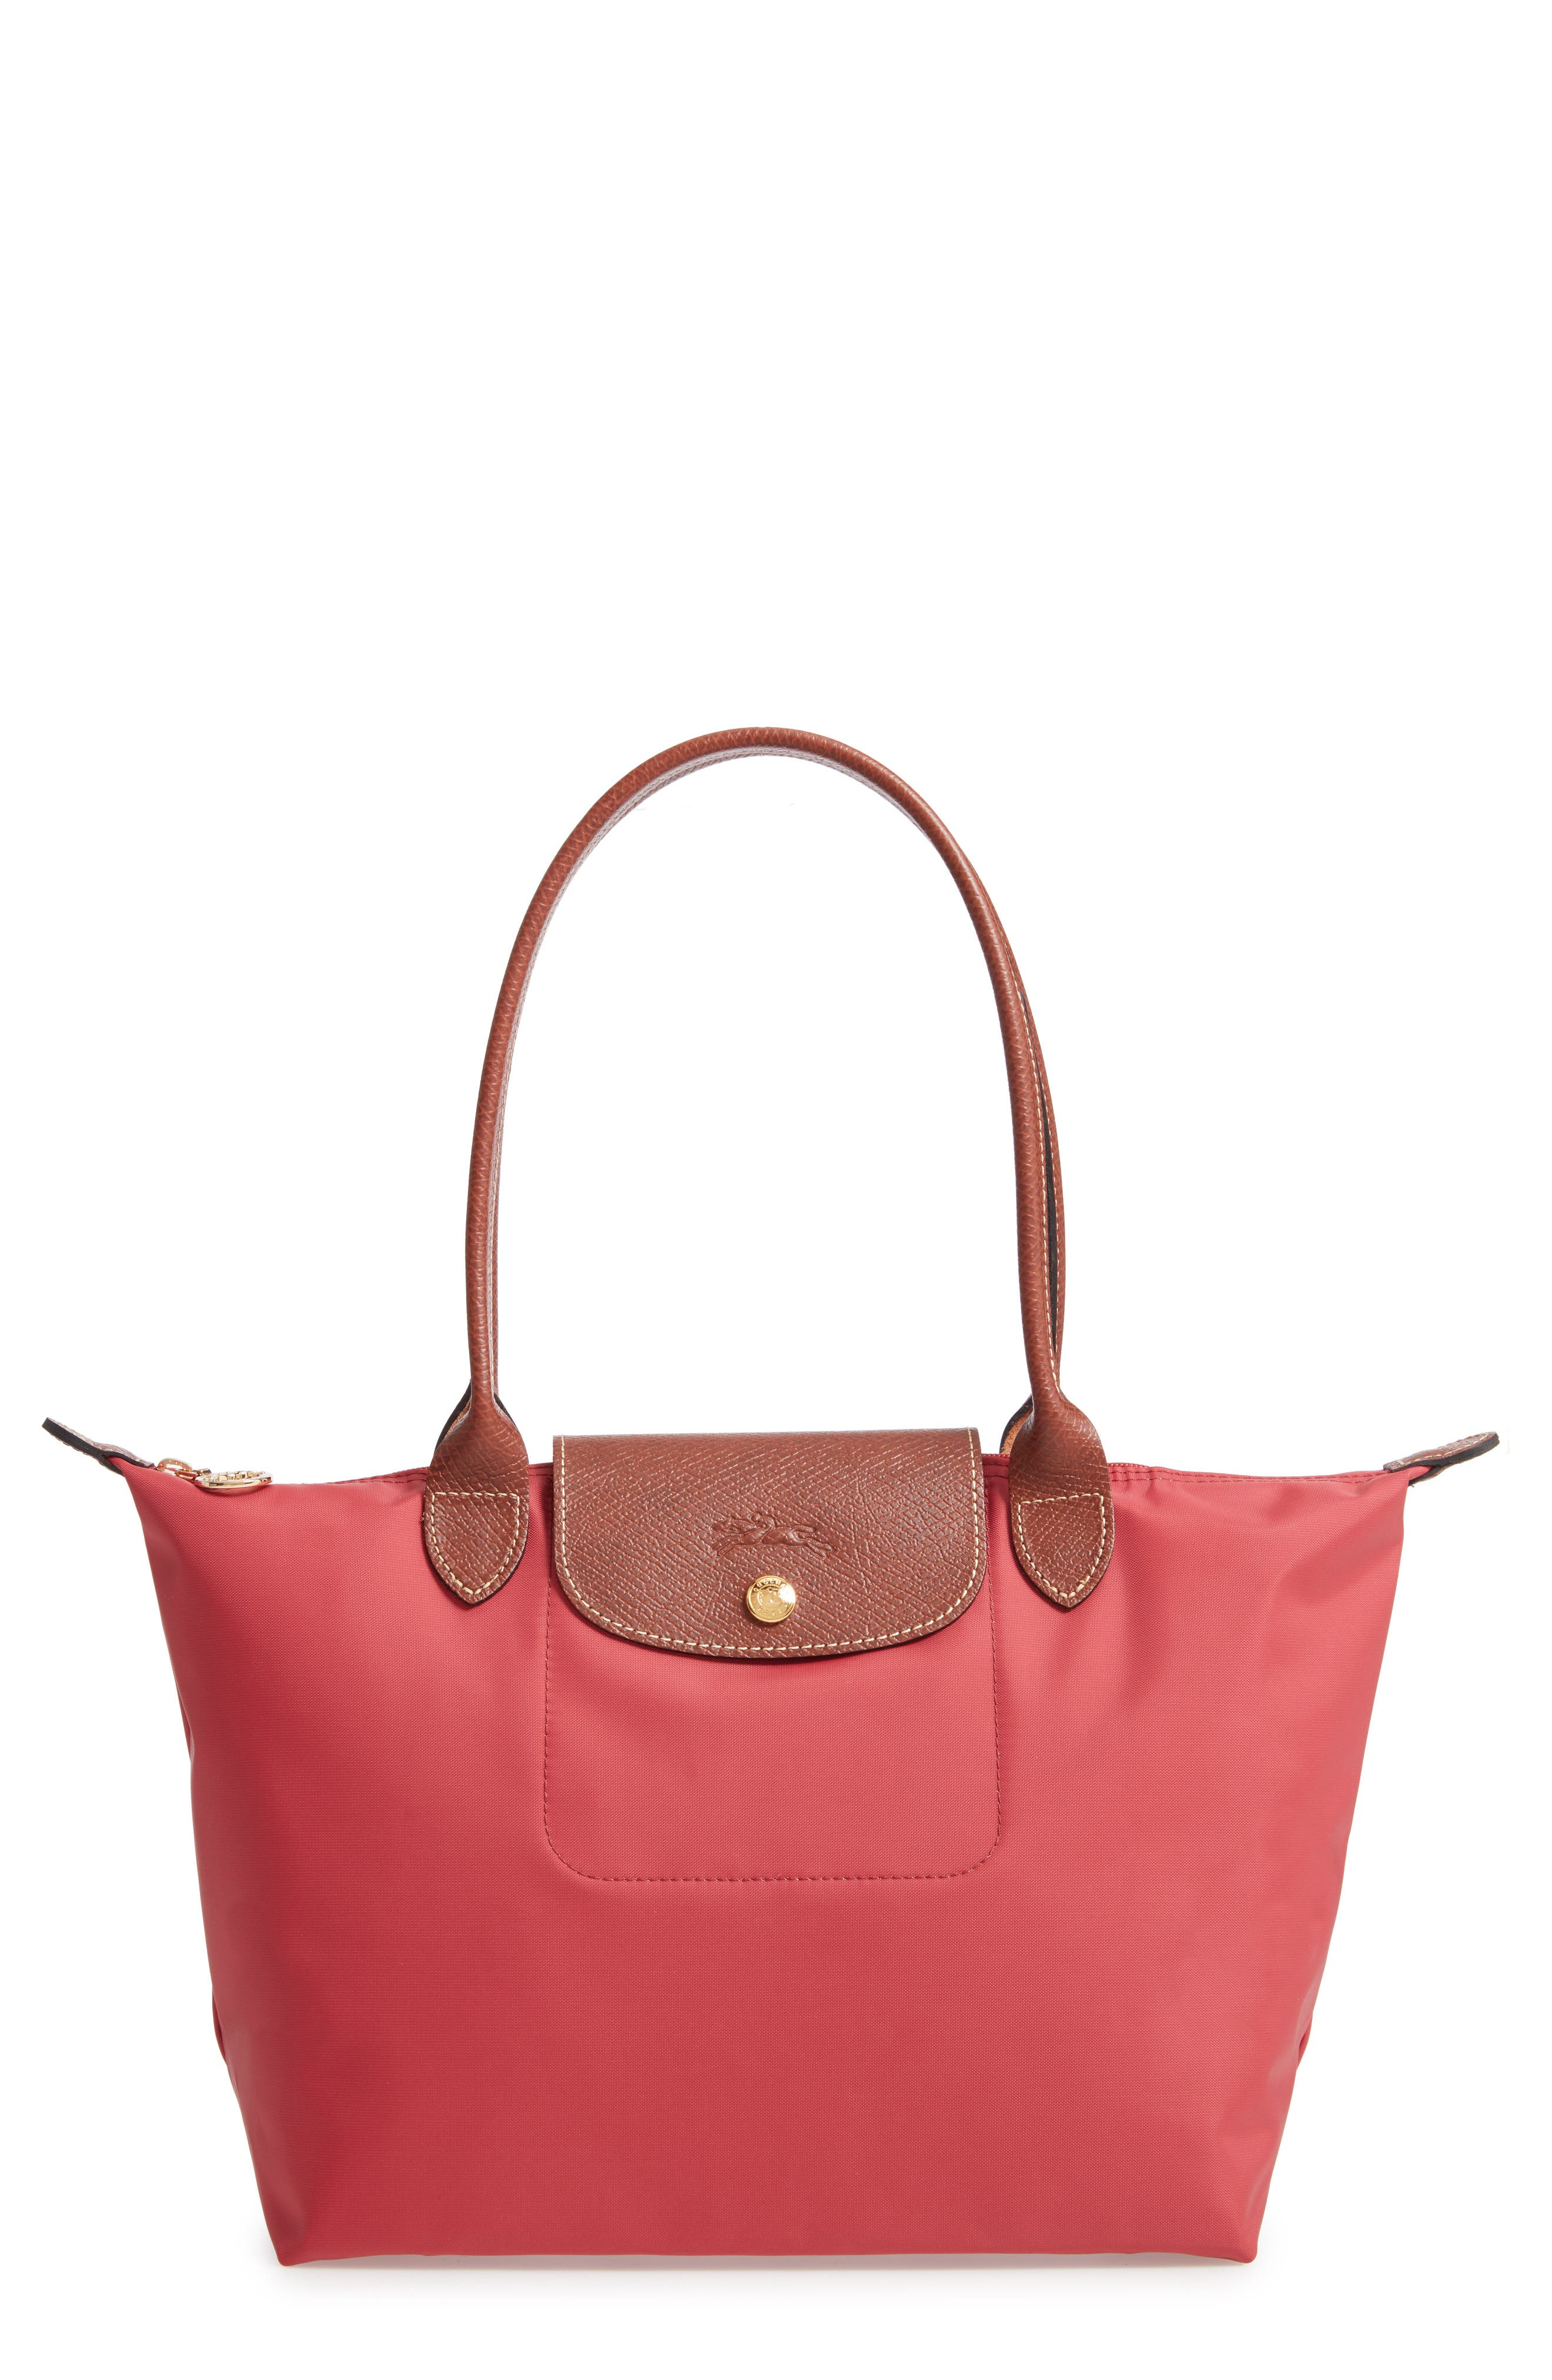 bac993ad333f Tote Bags for Women: Leather, Coated Canvas, & Neoprene | Nordstrom